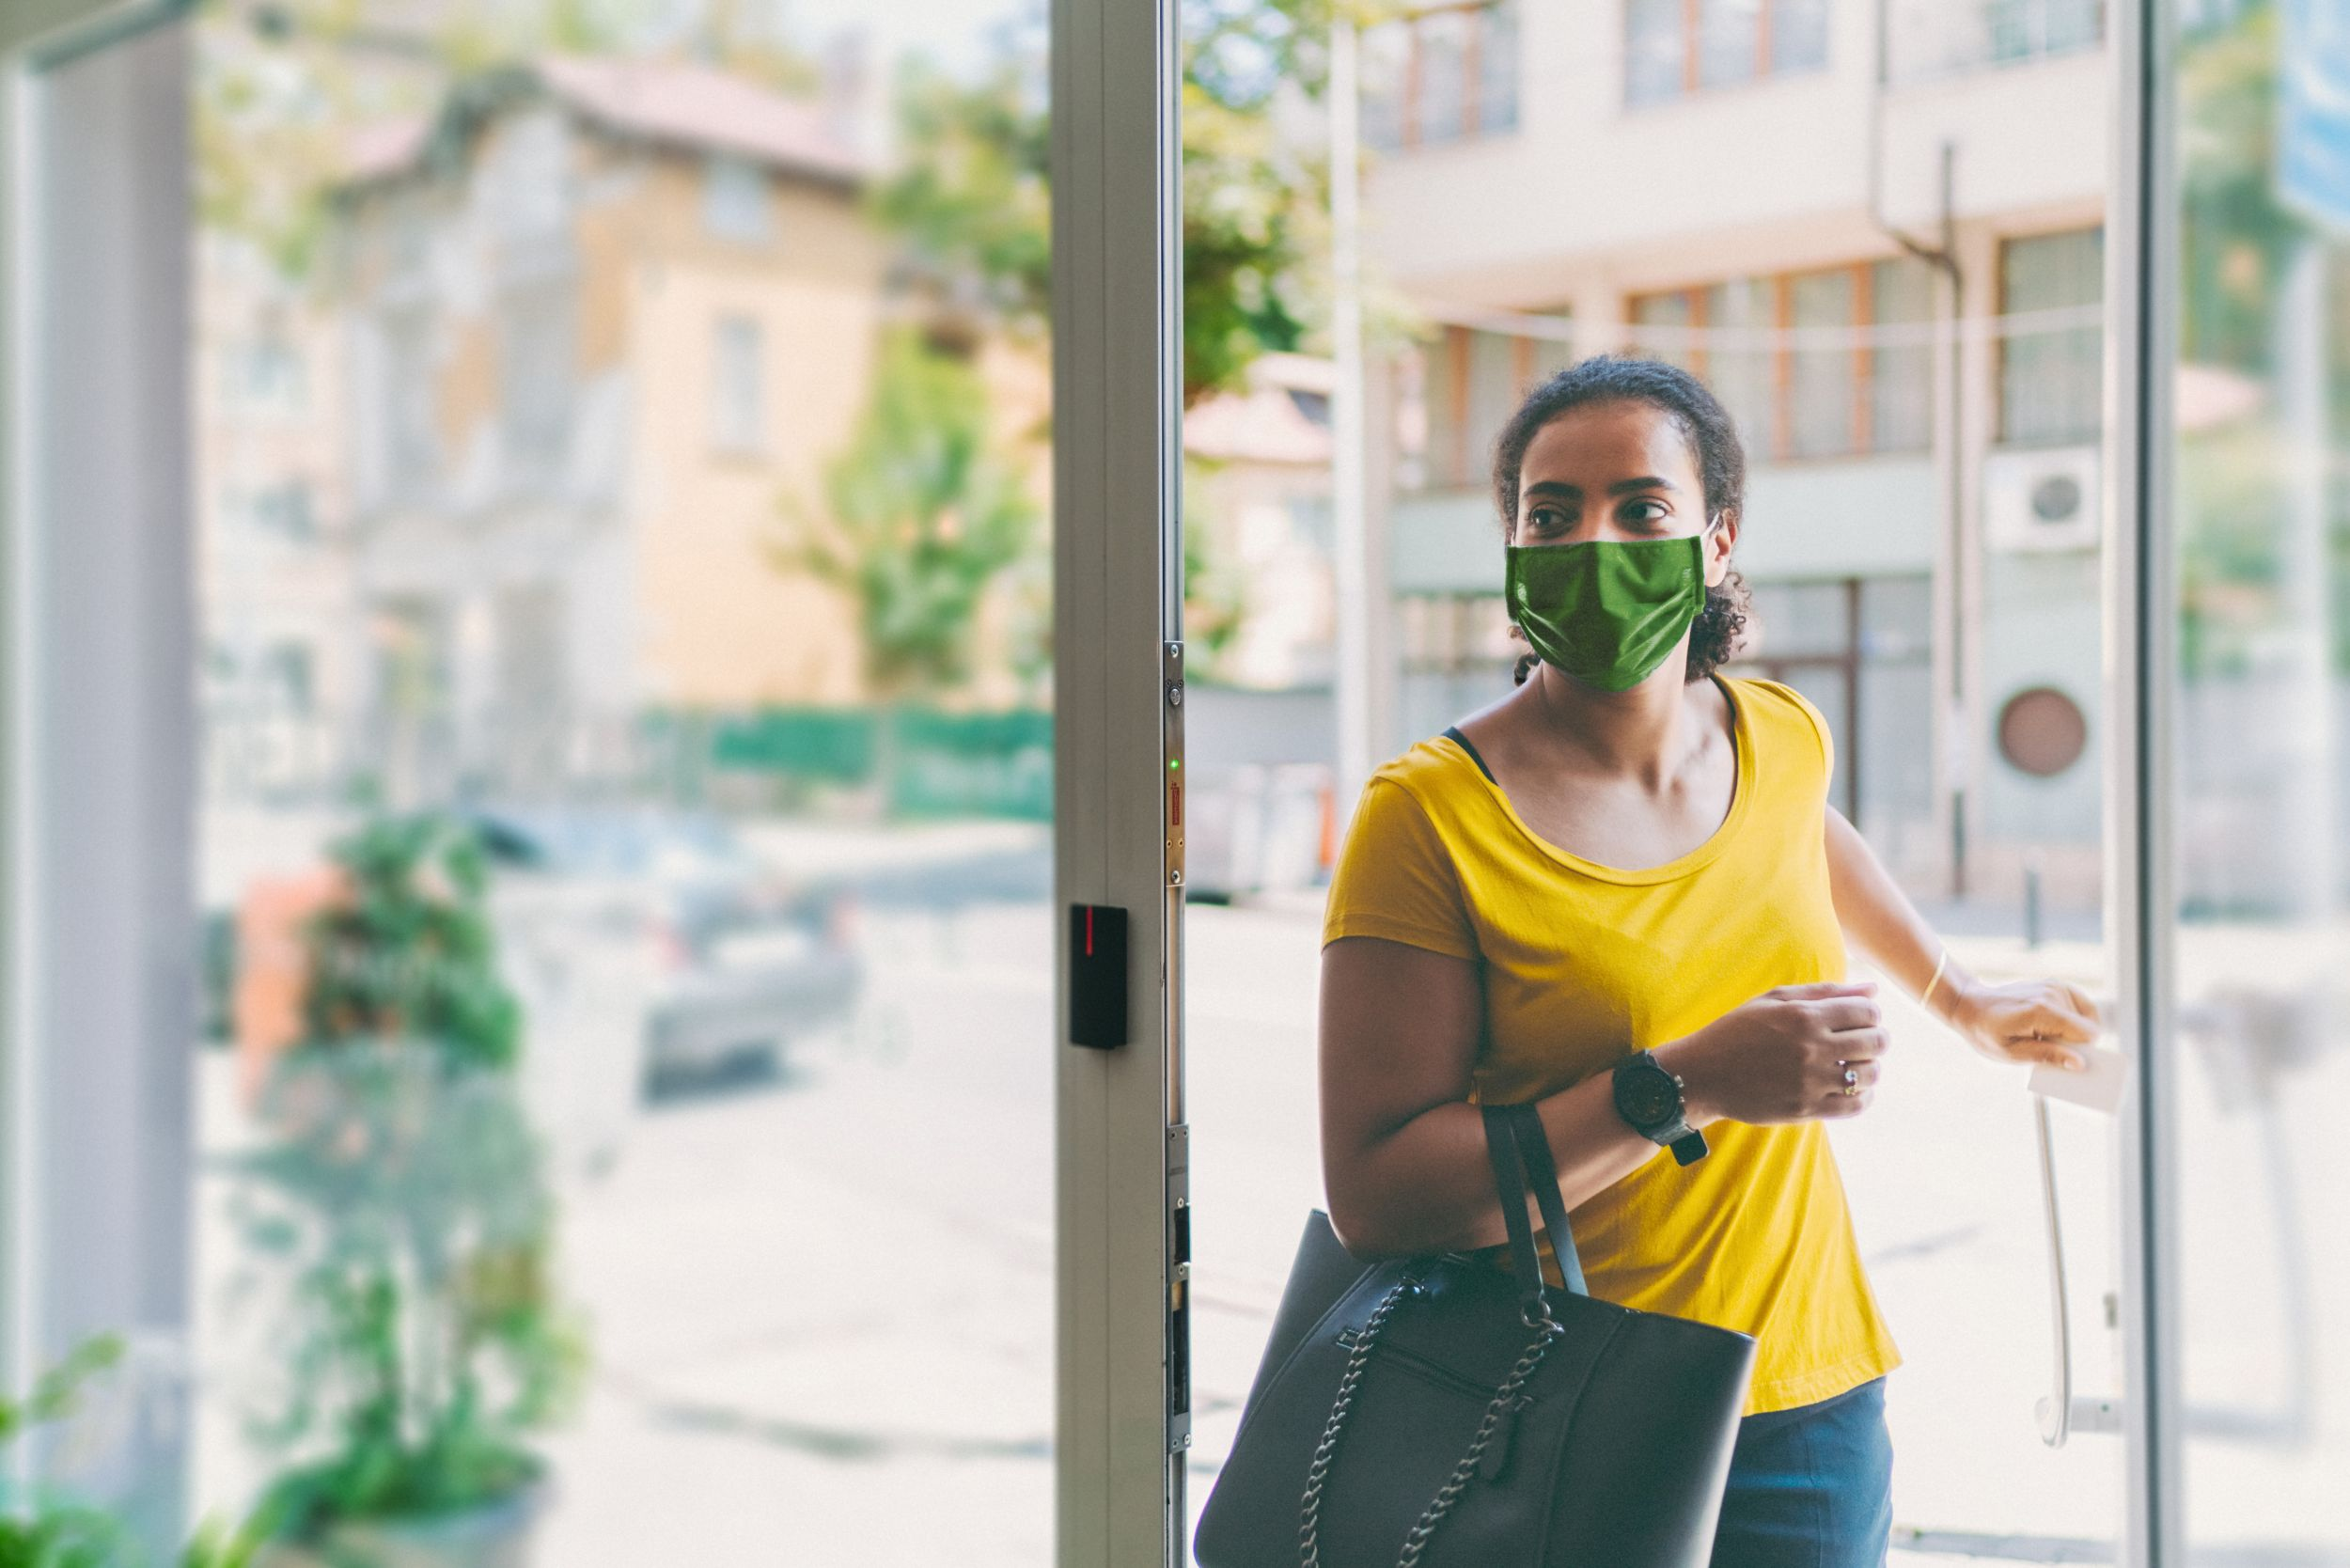 Woman with mask walking into a Quest patient service center.